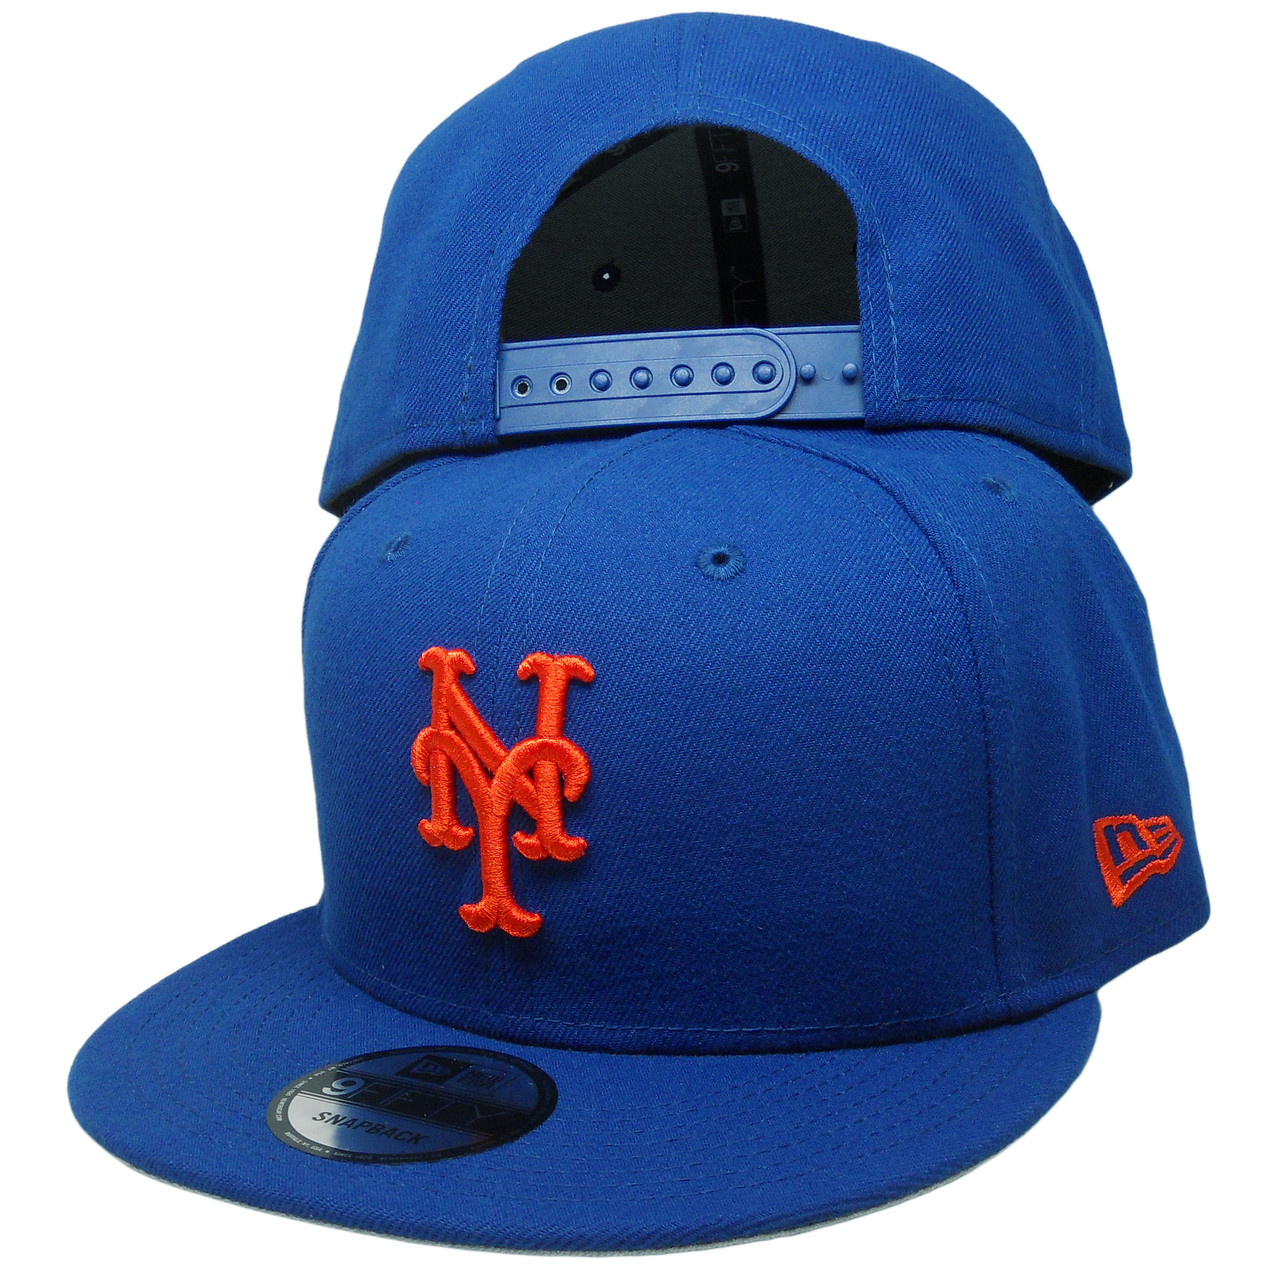 the latest 6ea9d e8fdf New York Mets New Era 9Fifty MLB Basic Snapback - Royal, Orange -  ECapsUnlimited.com